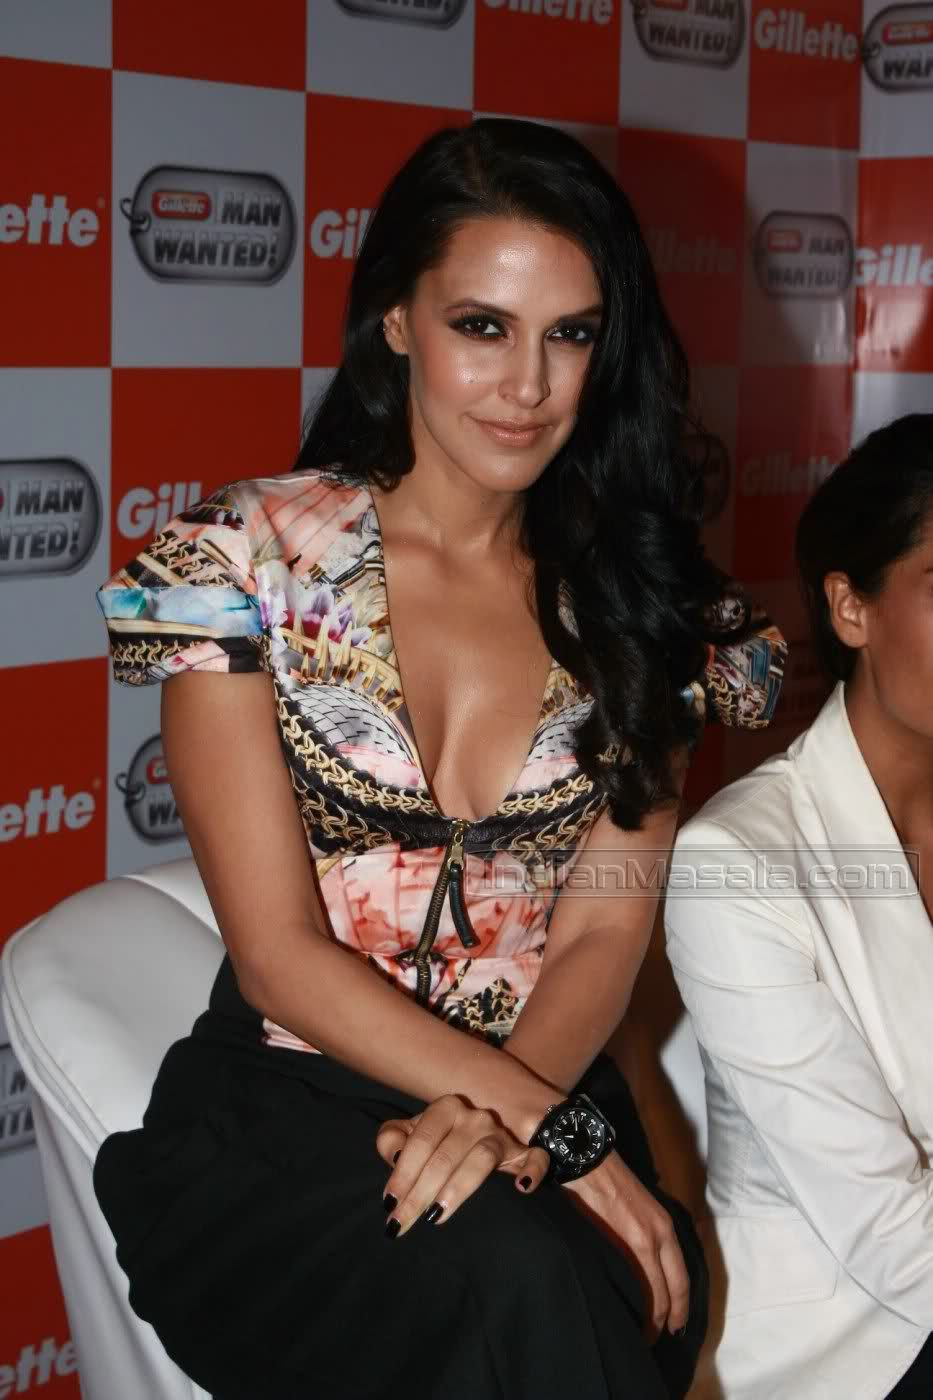 Neha Dhupia Hot And Sexy Images And Wallpapers Very Erotic Maal From Bollywood And Indian Cinema Hot Bikini Avtaar